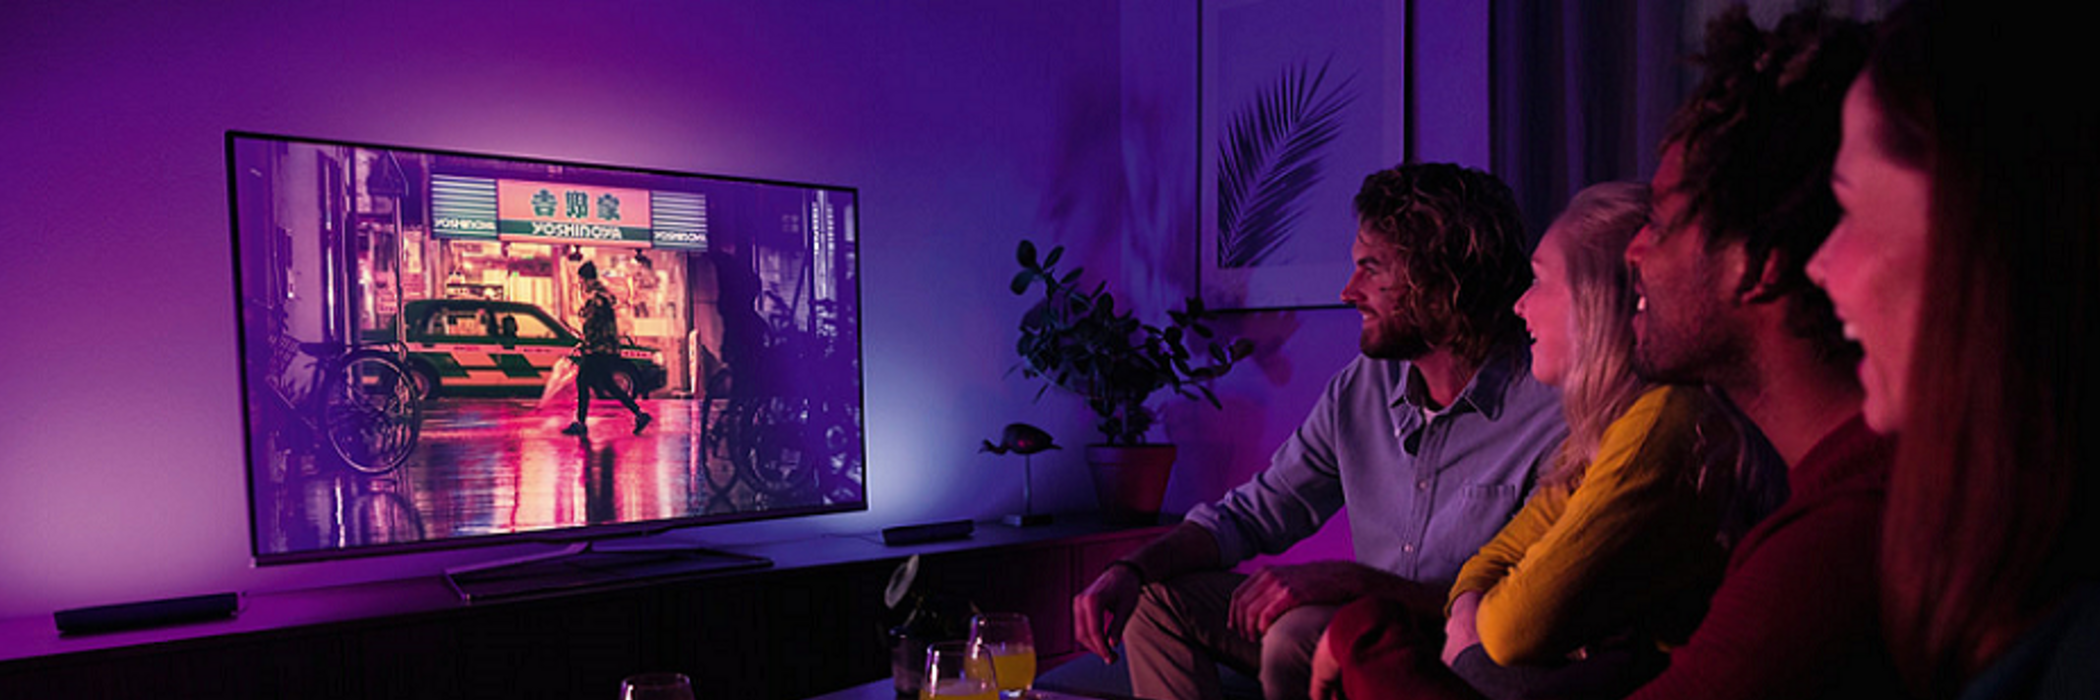 Friends watching TV lit by Philips Hue Play light bars.